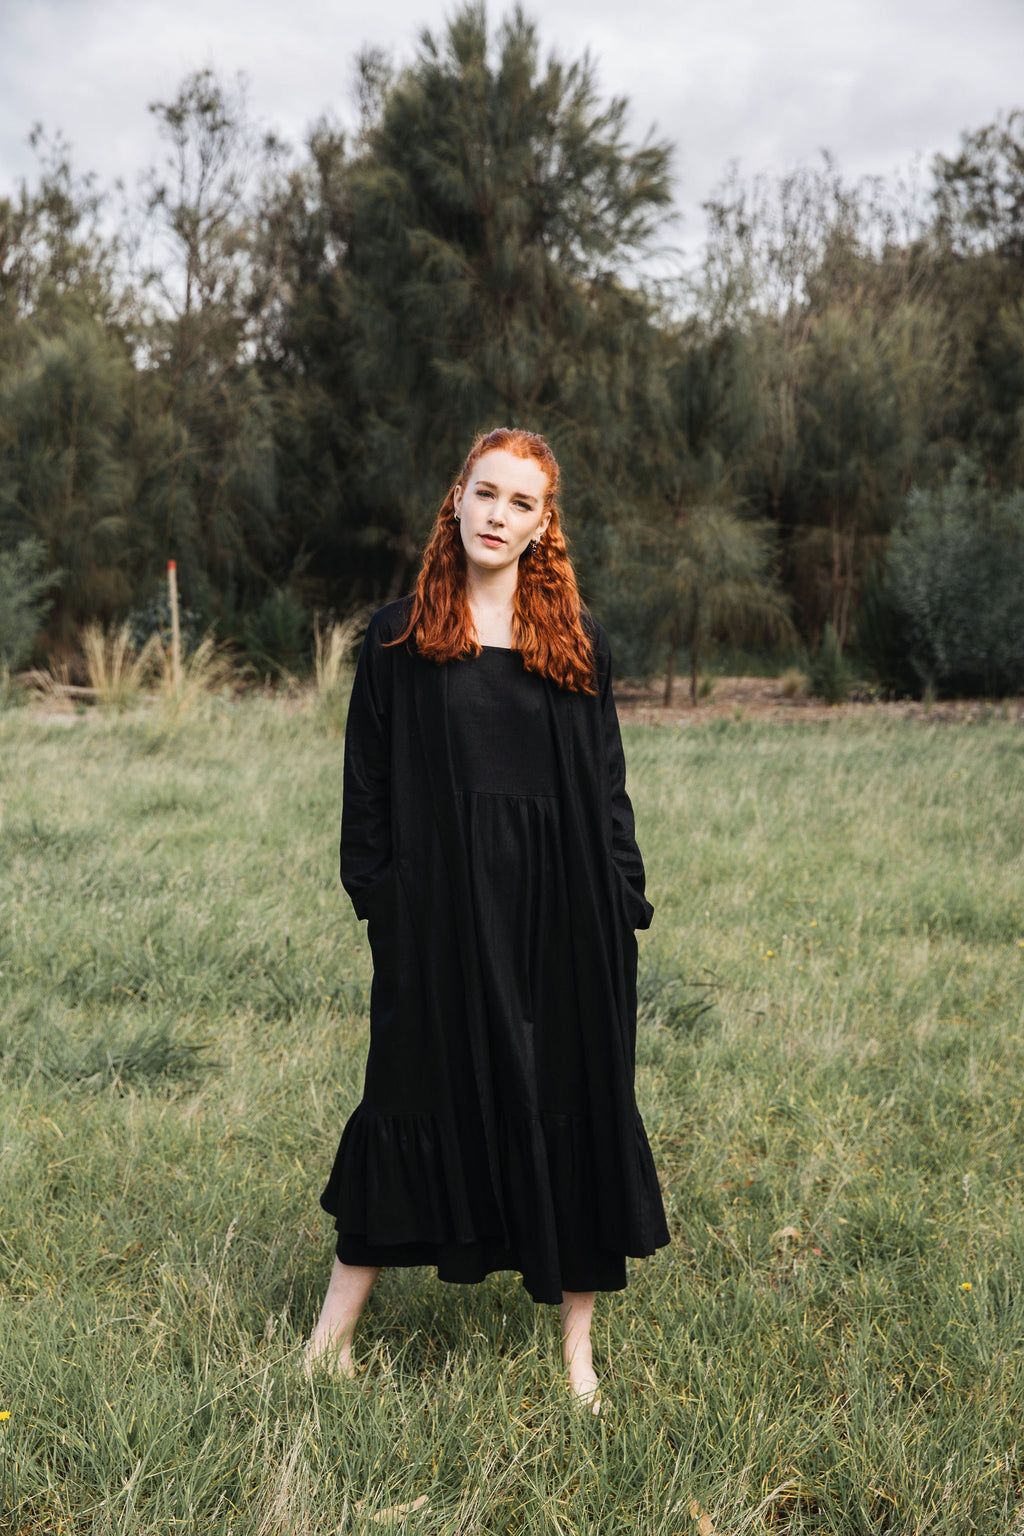 Ethically made long coat with side pockets and waist-tie in black cotton linen mix.